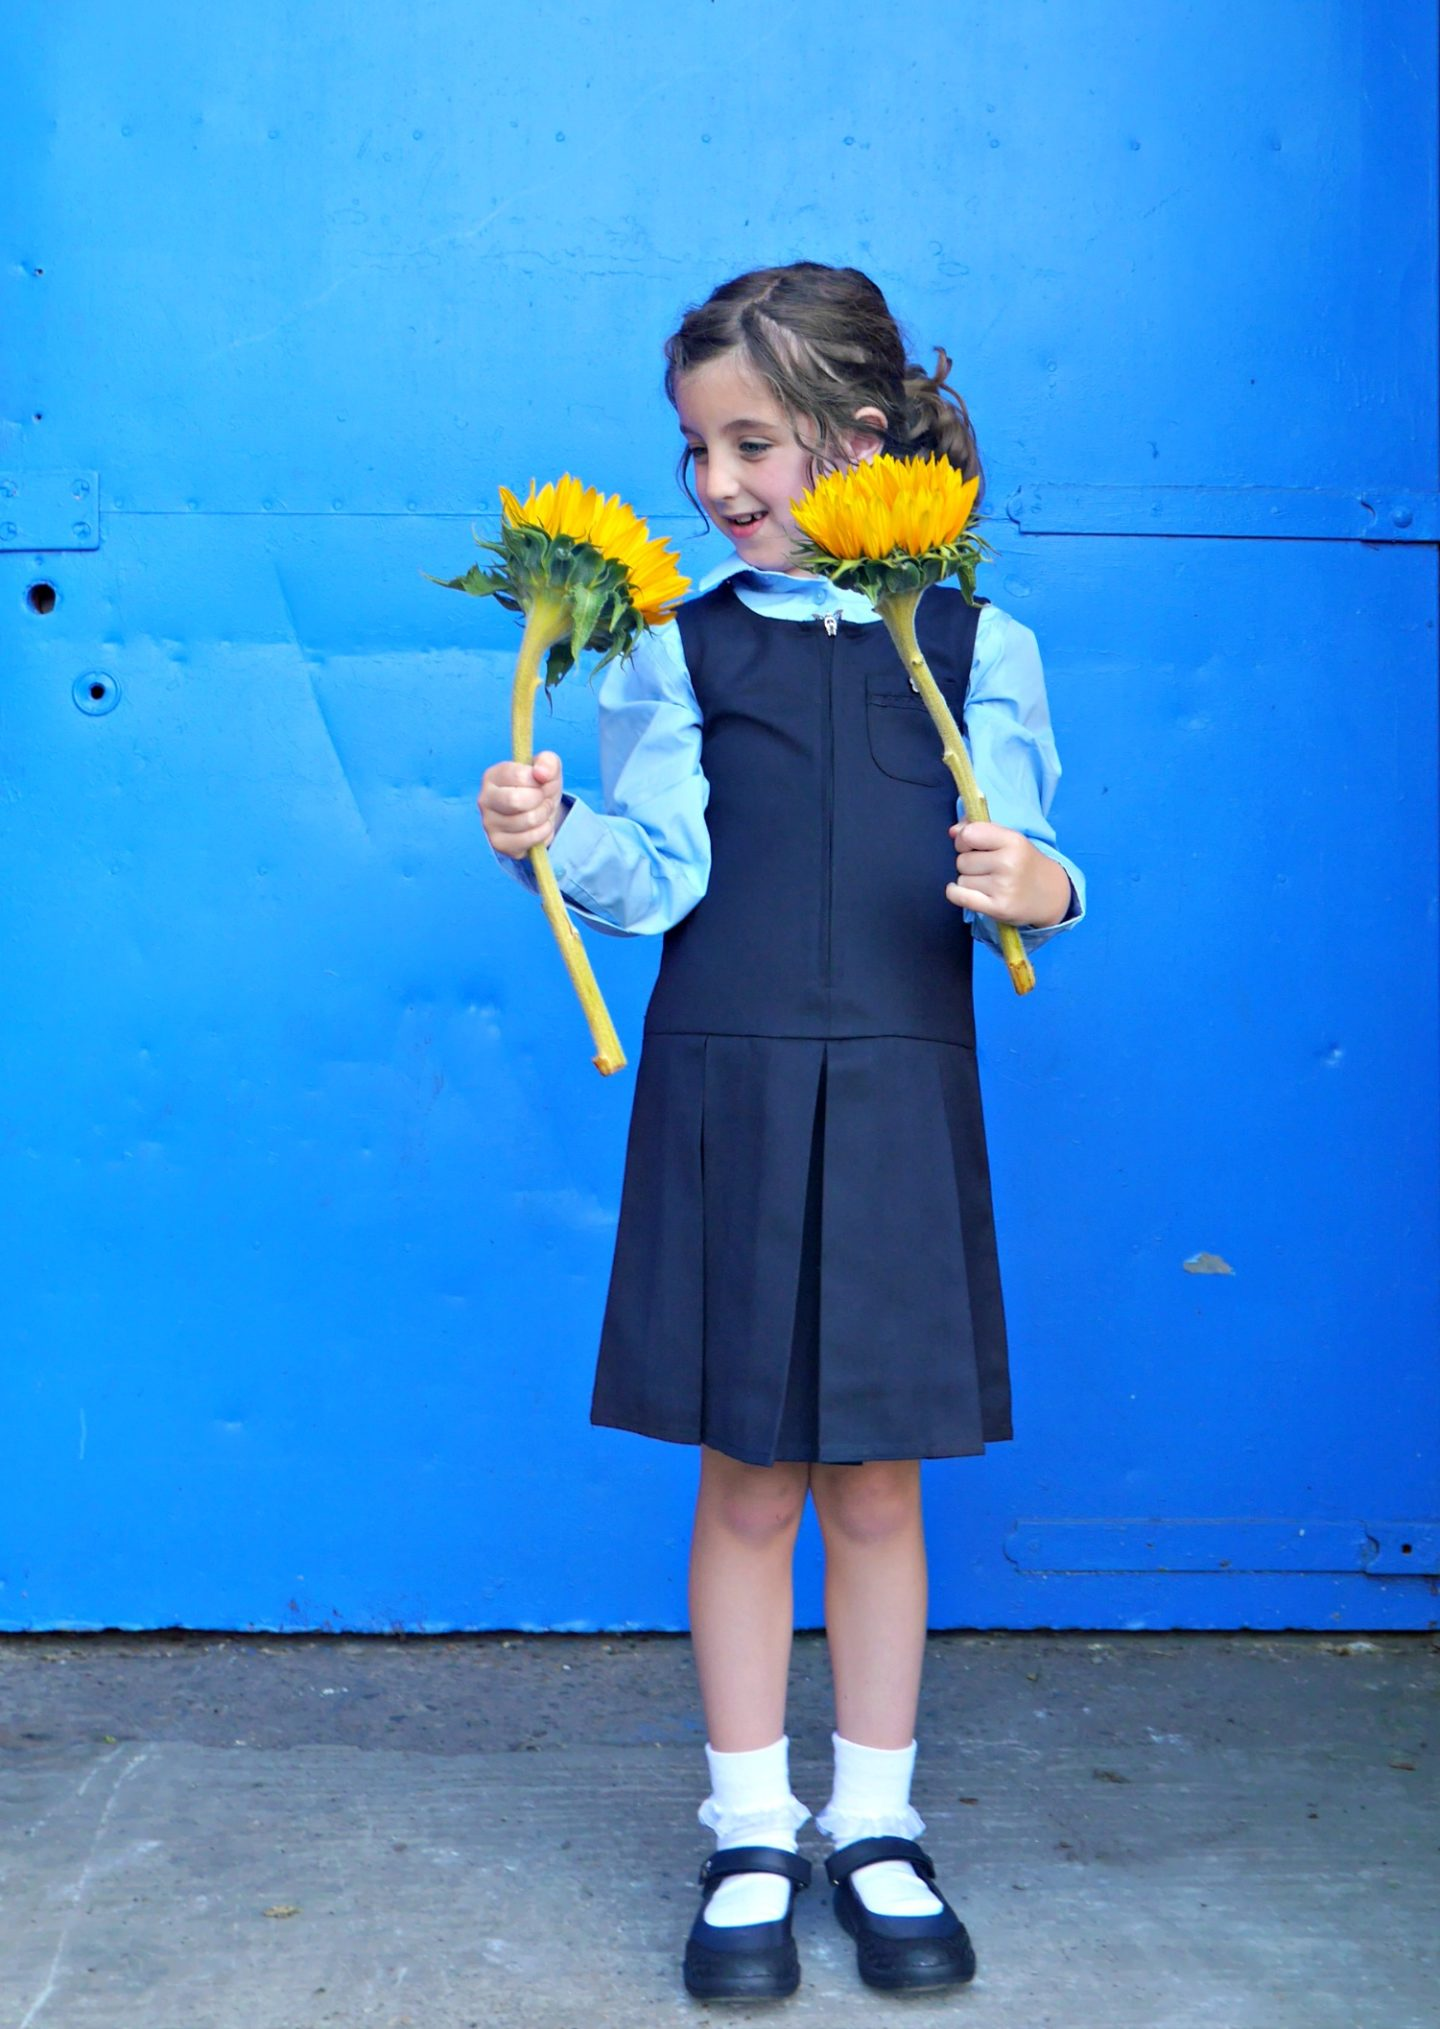 Starting school - tips for buying school uniform when starting primary school